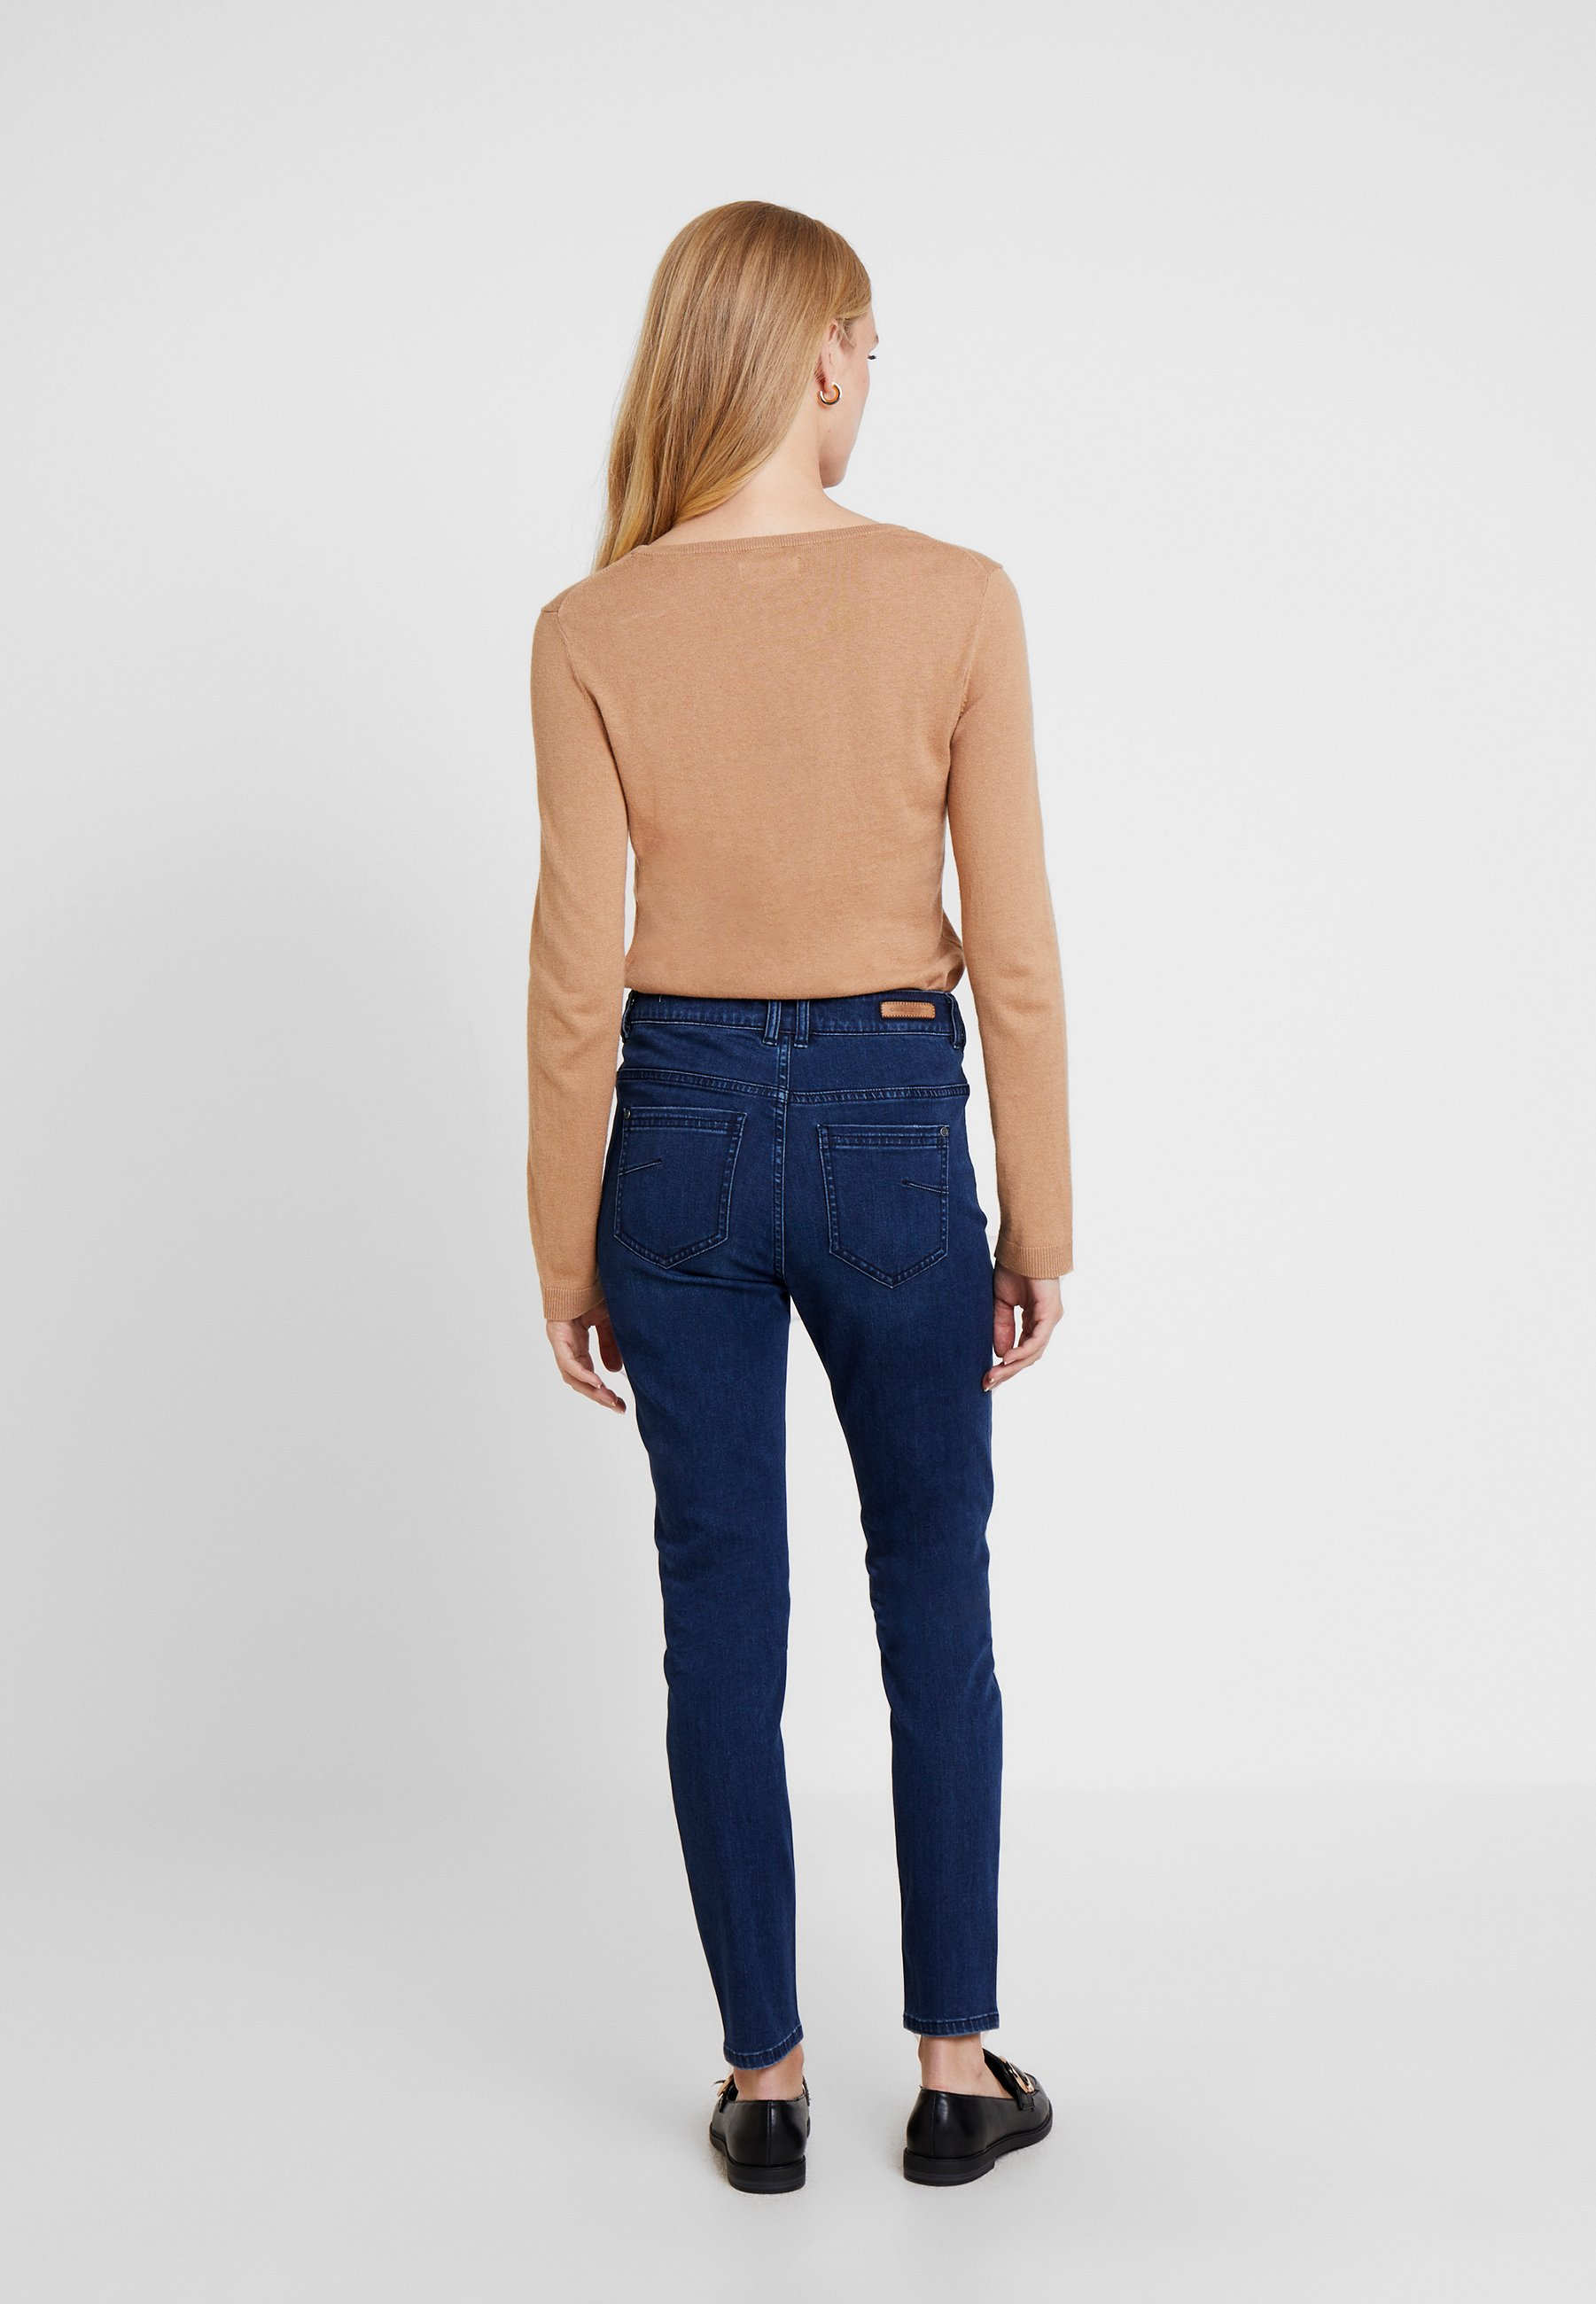 Identity Casual TrousersJean Denim Blue Slim Comma PXklOZwiuT